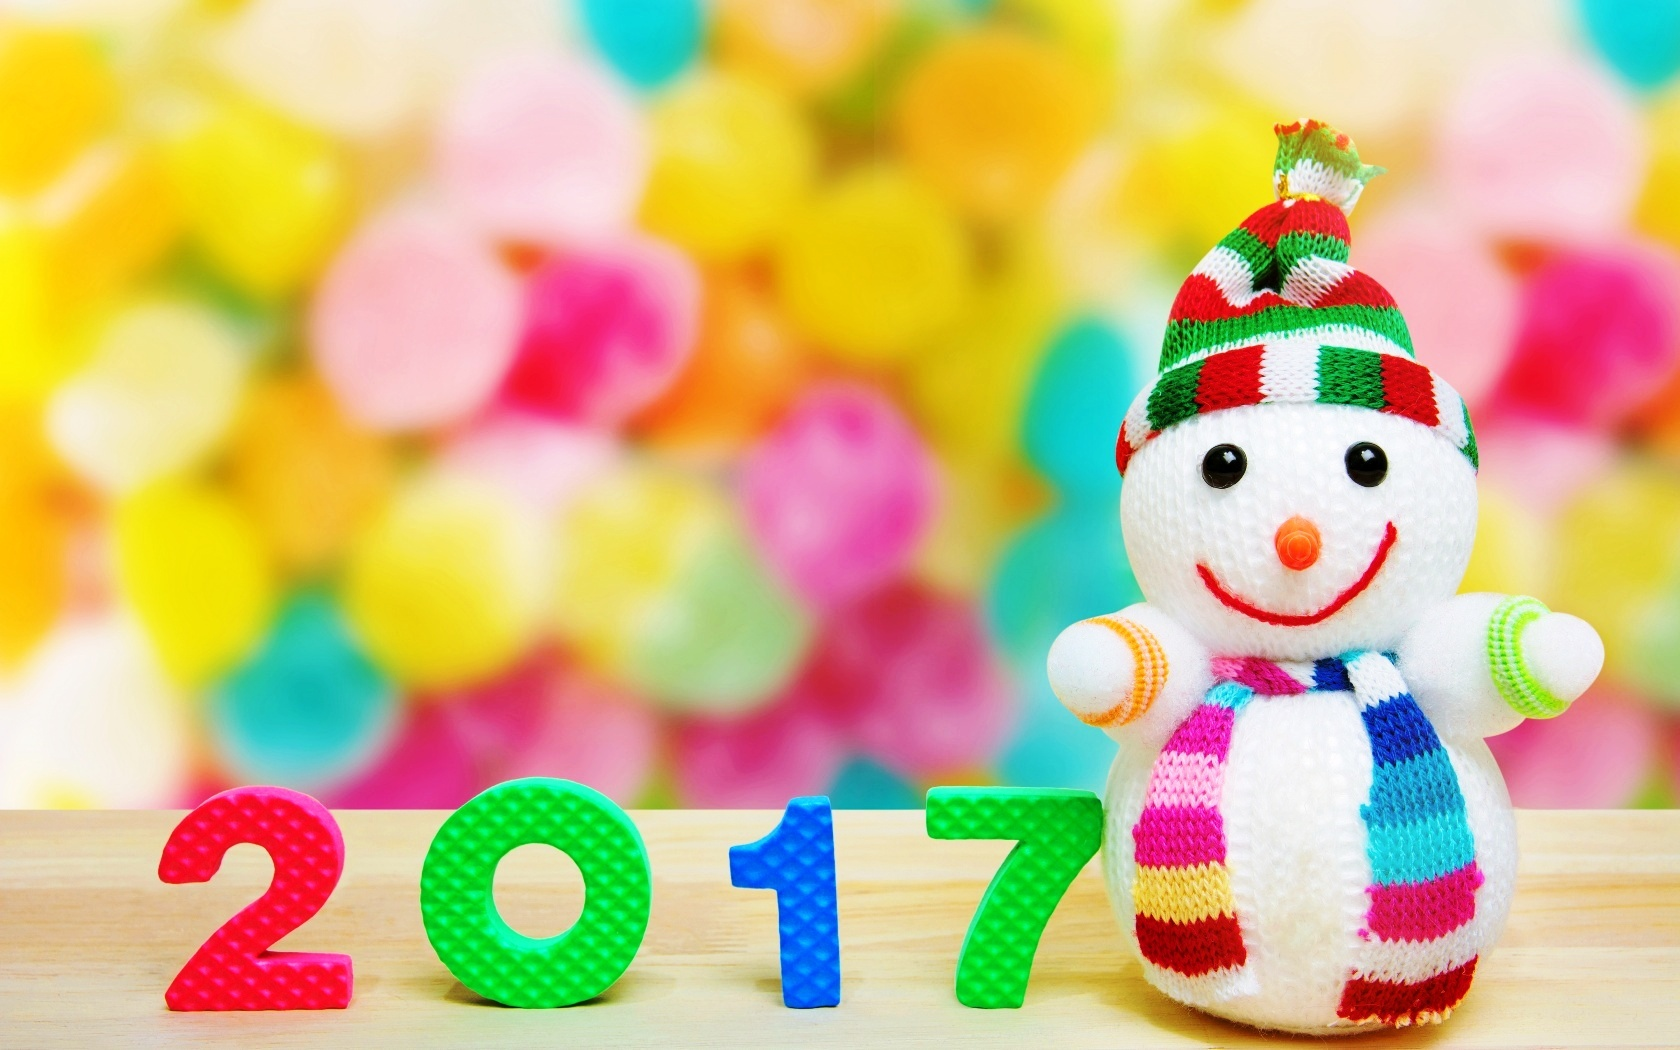 2017 And Snowman